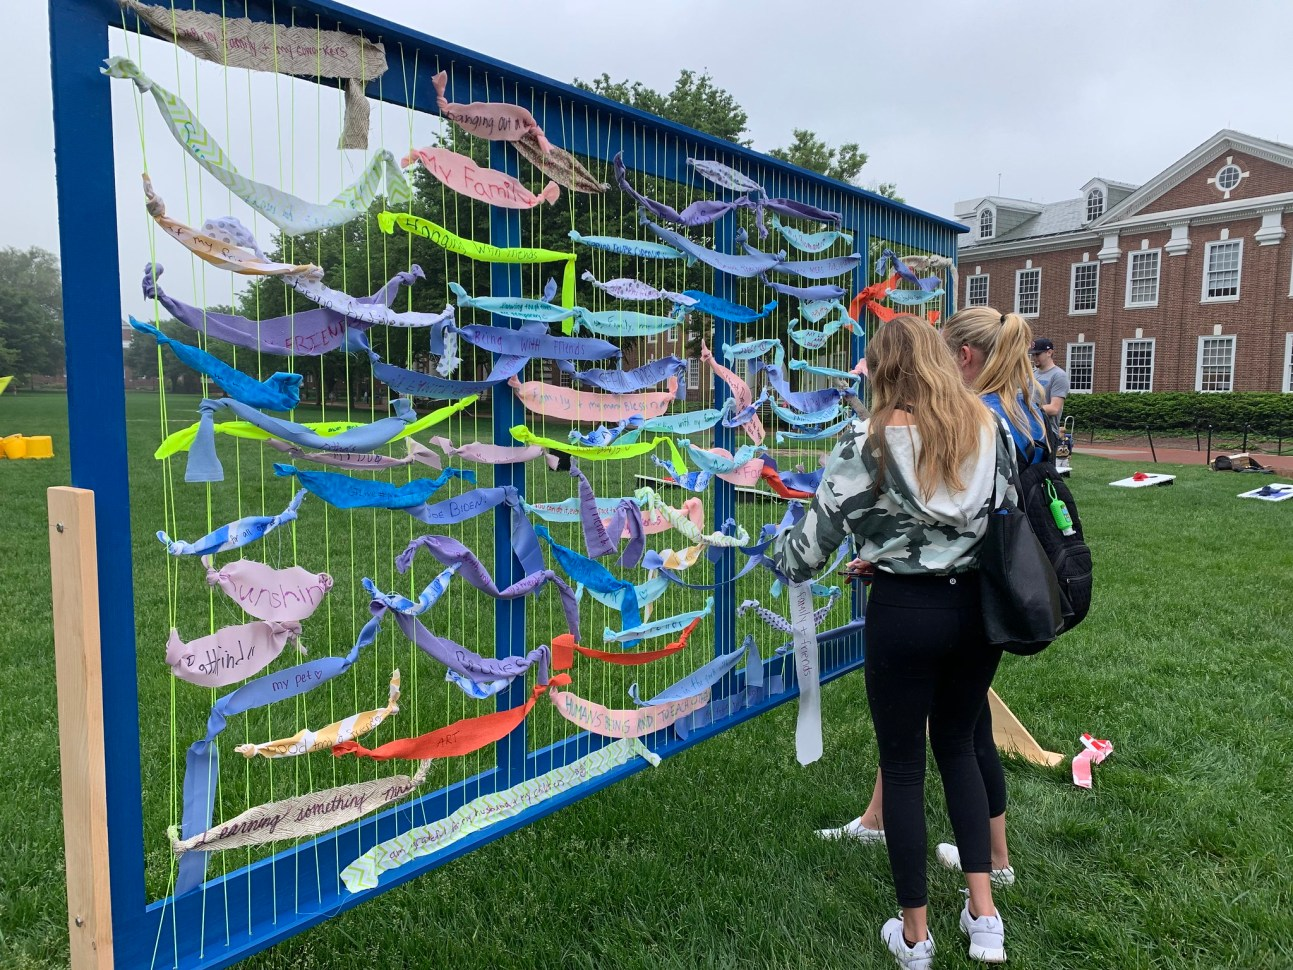 Student Wellness and Health Promotion's art installations on The Green